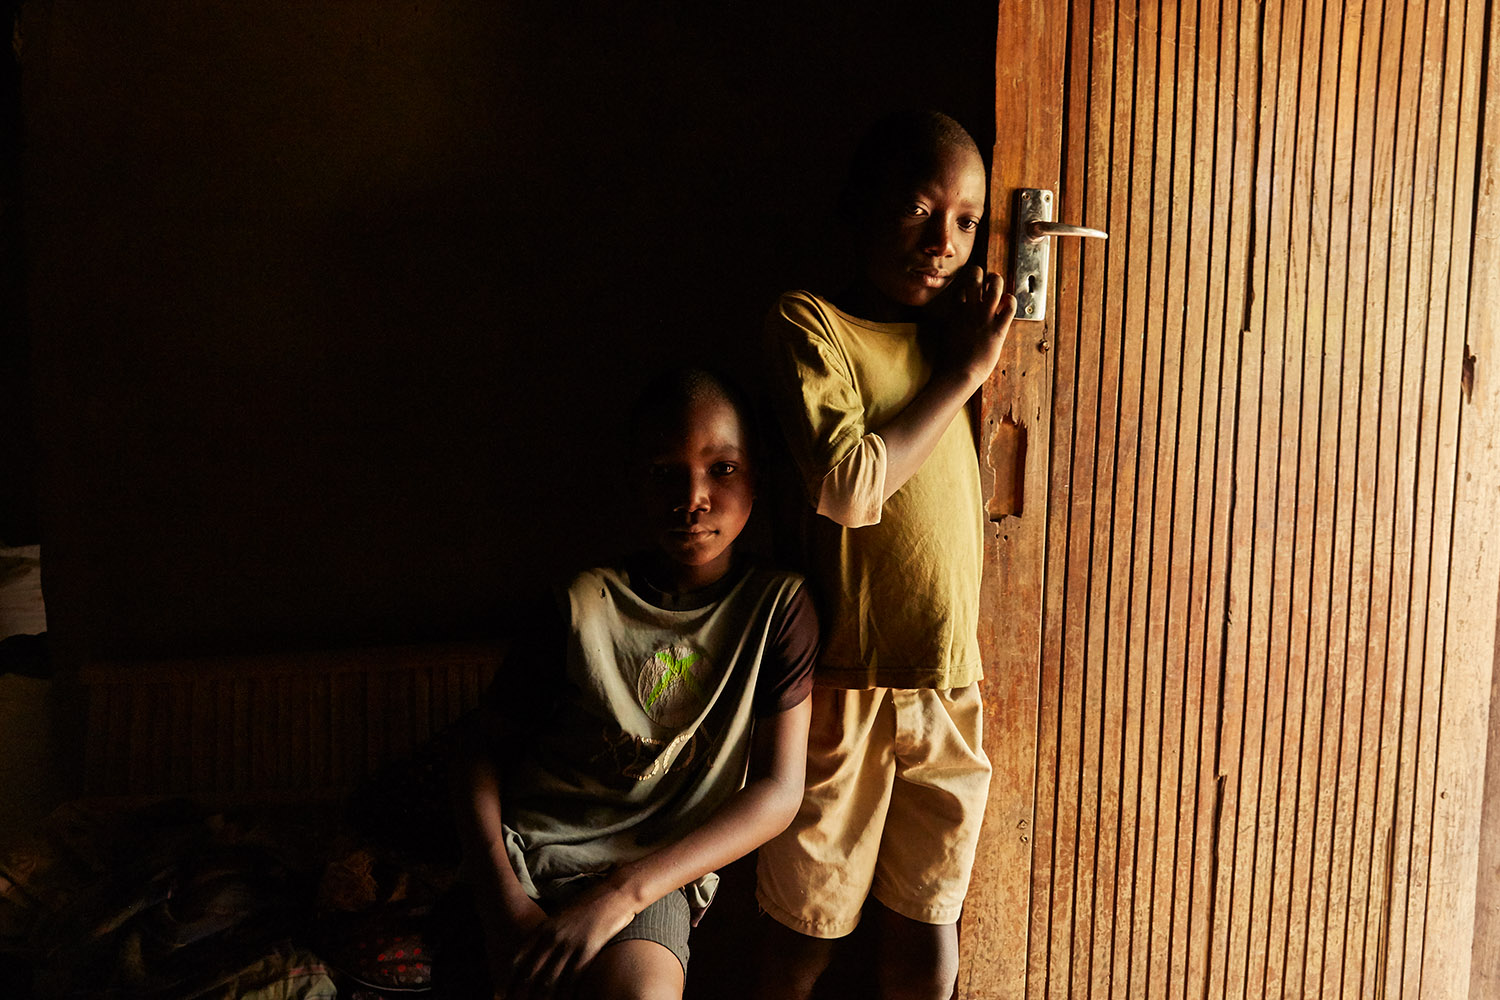 Jan Chumba (12) and his brother Ben (10) in the doorway of their home, Chiuta village, southern Malawi, 2017.  During the day, the only light inside comes from the open door and windows.